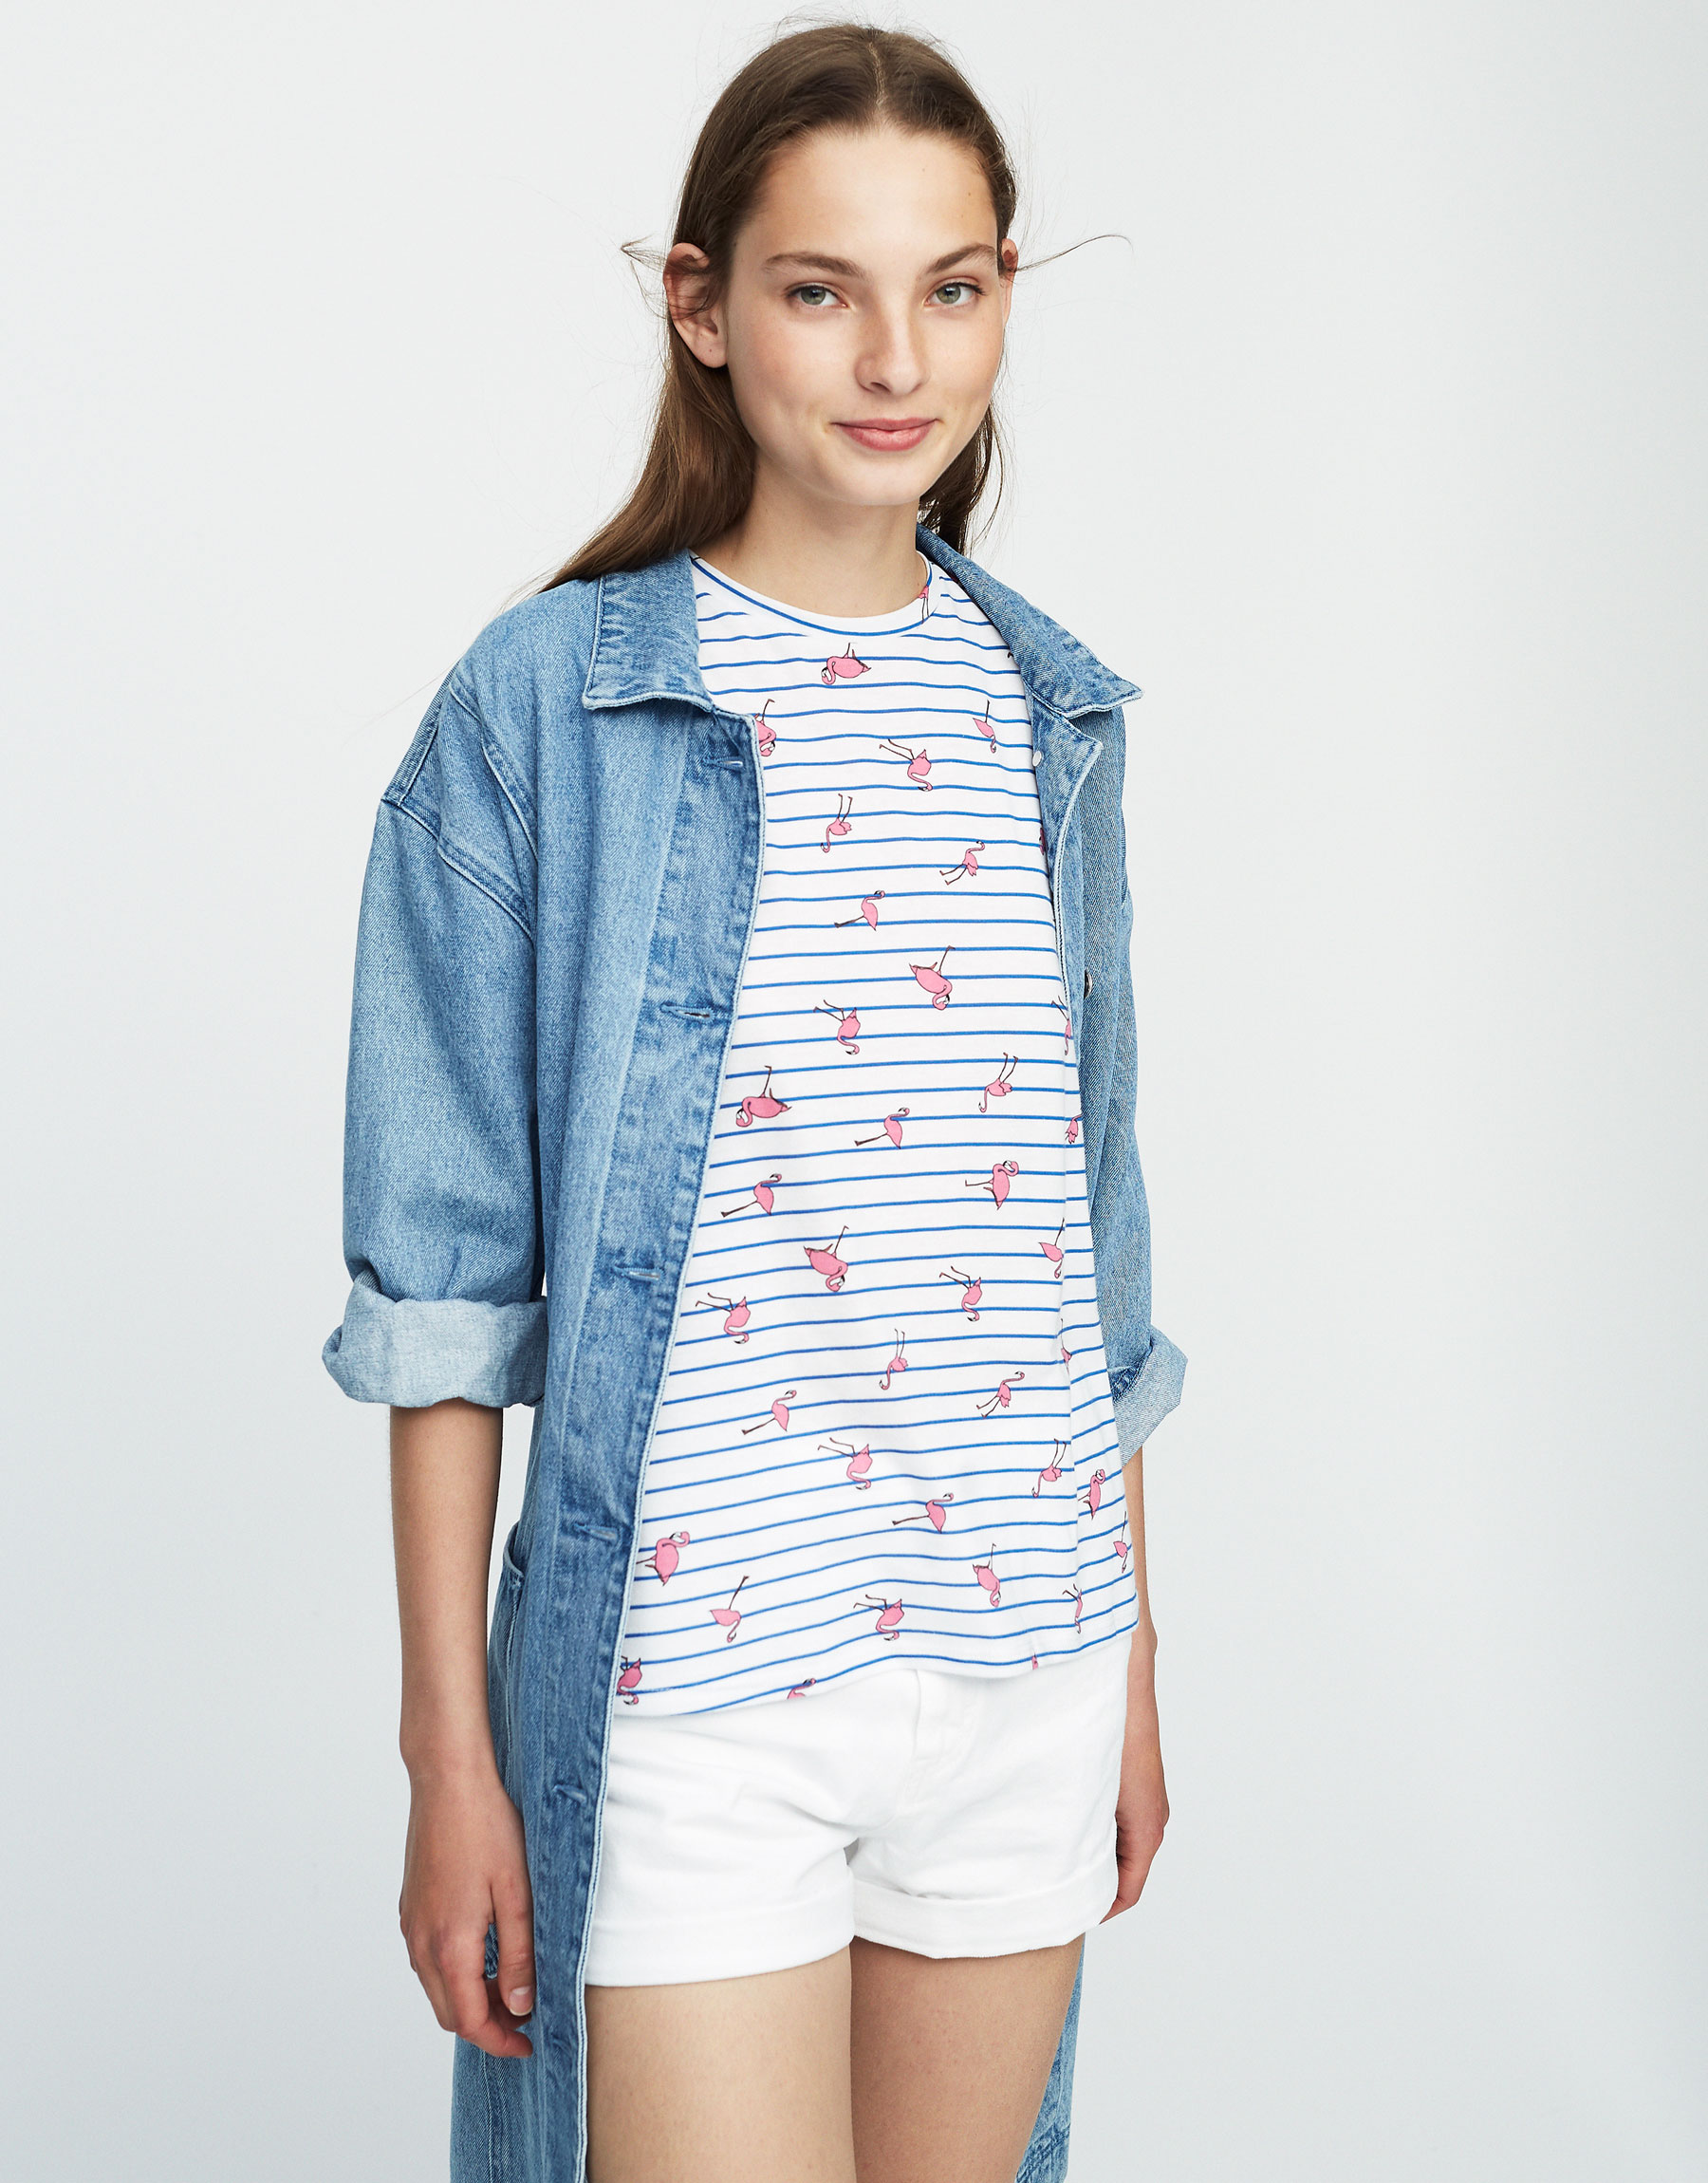 Striped T-shirt with all-over flamingo print